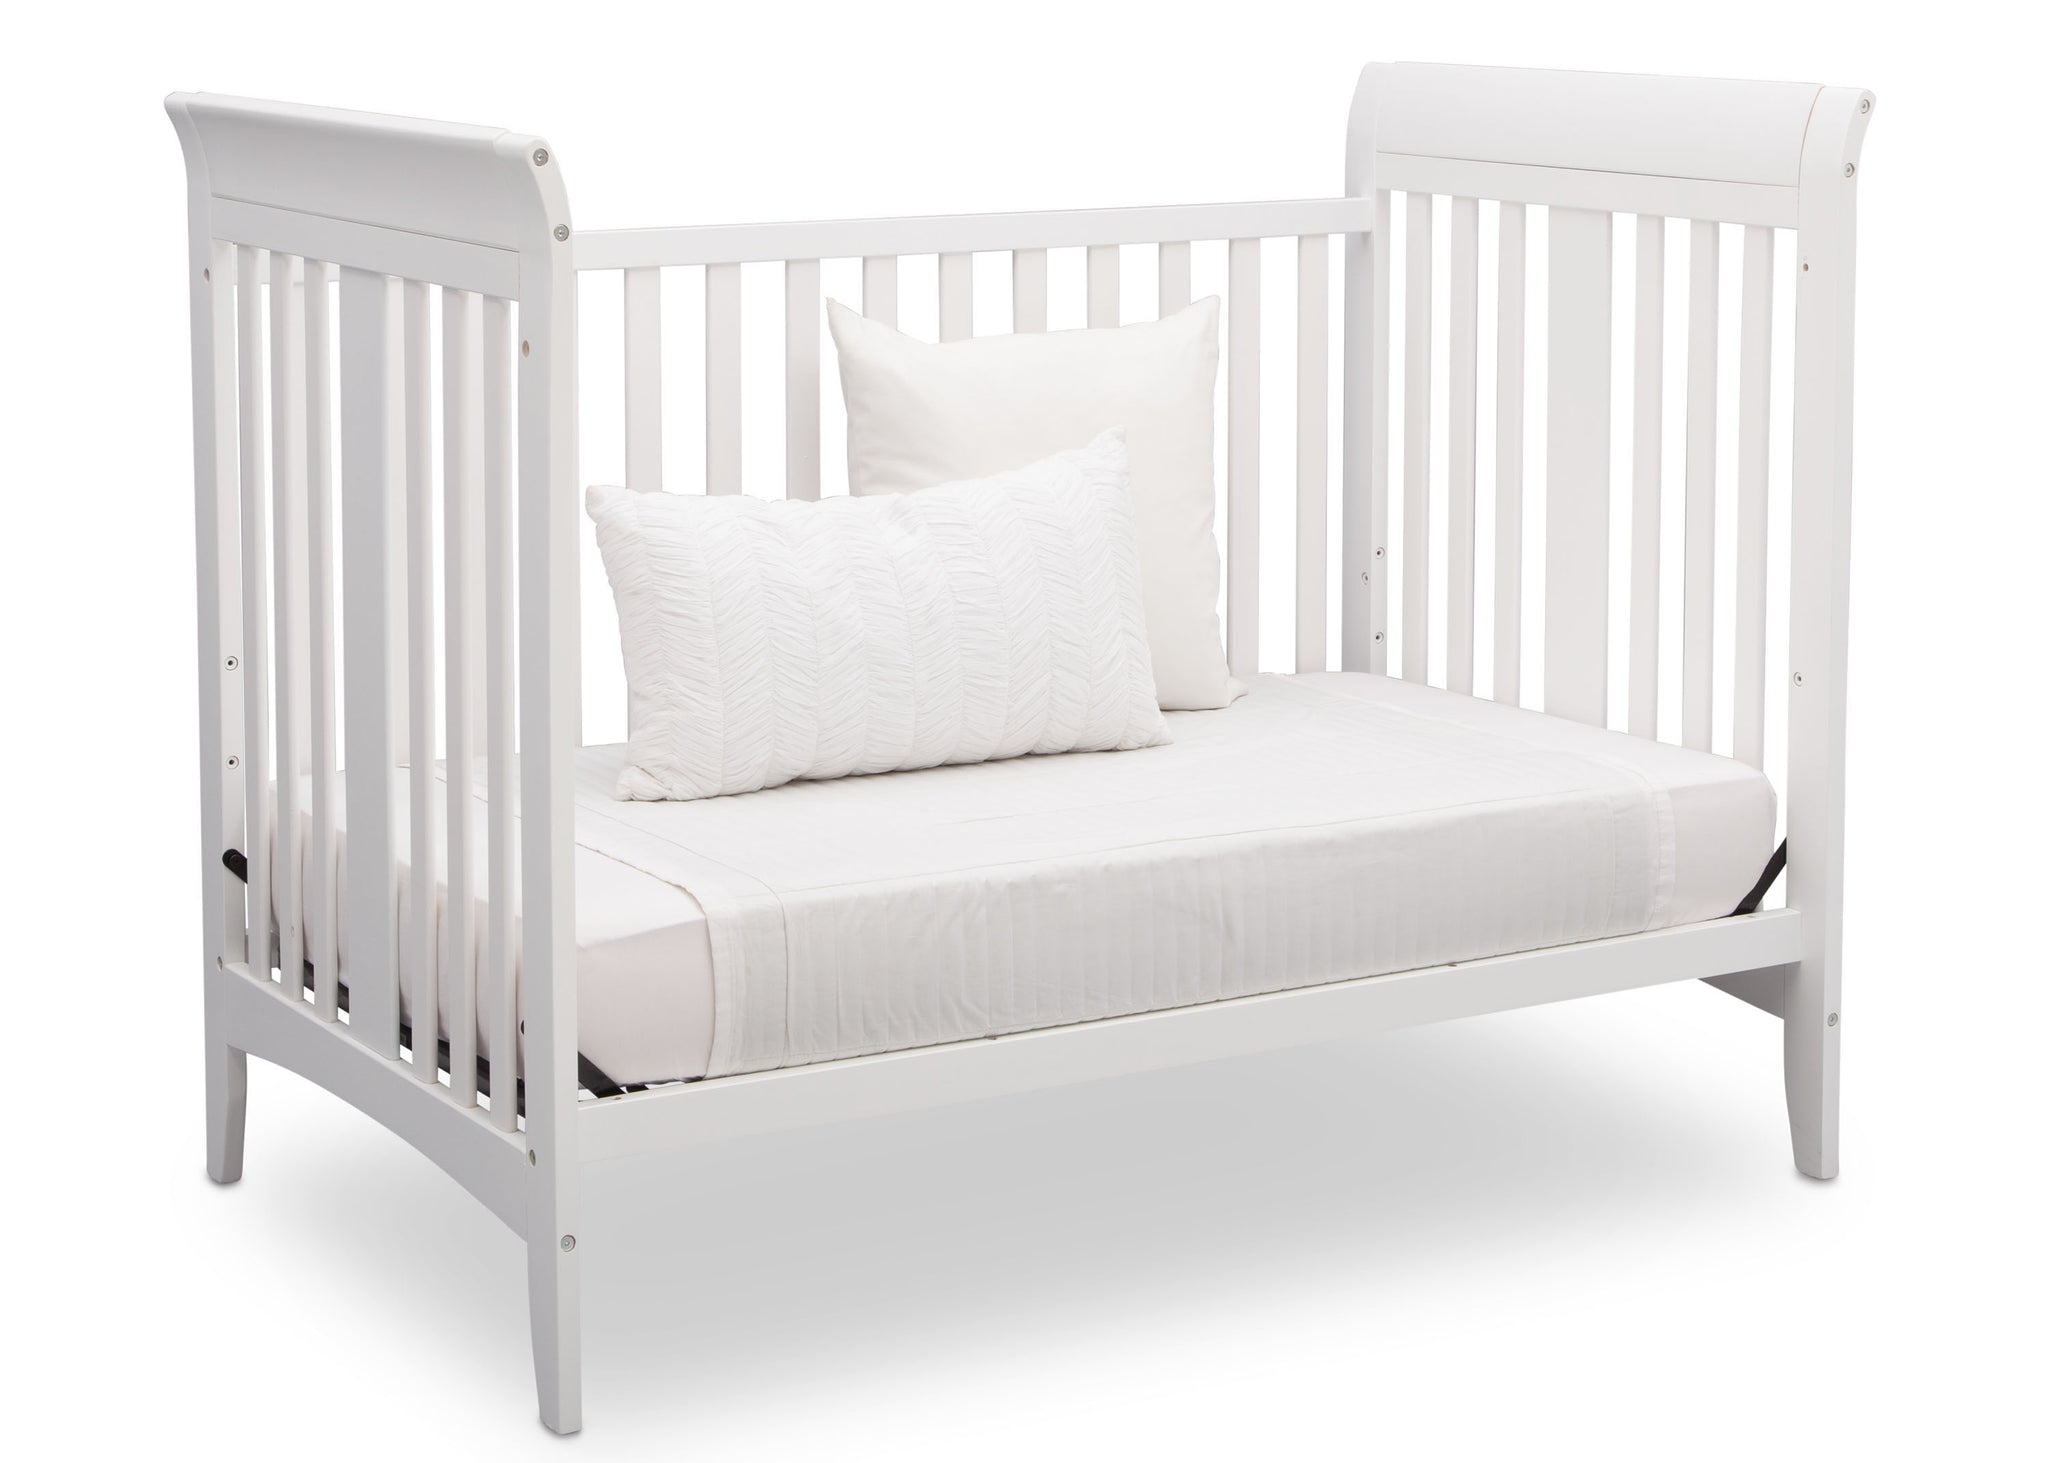 Delta Children White (100) Parkside 3-in-1-Crib, Day Bed Conversion a6a